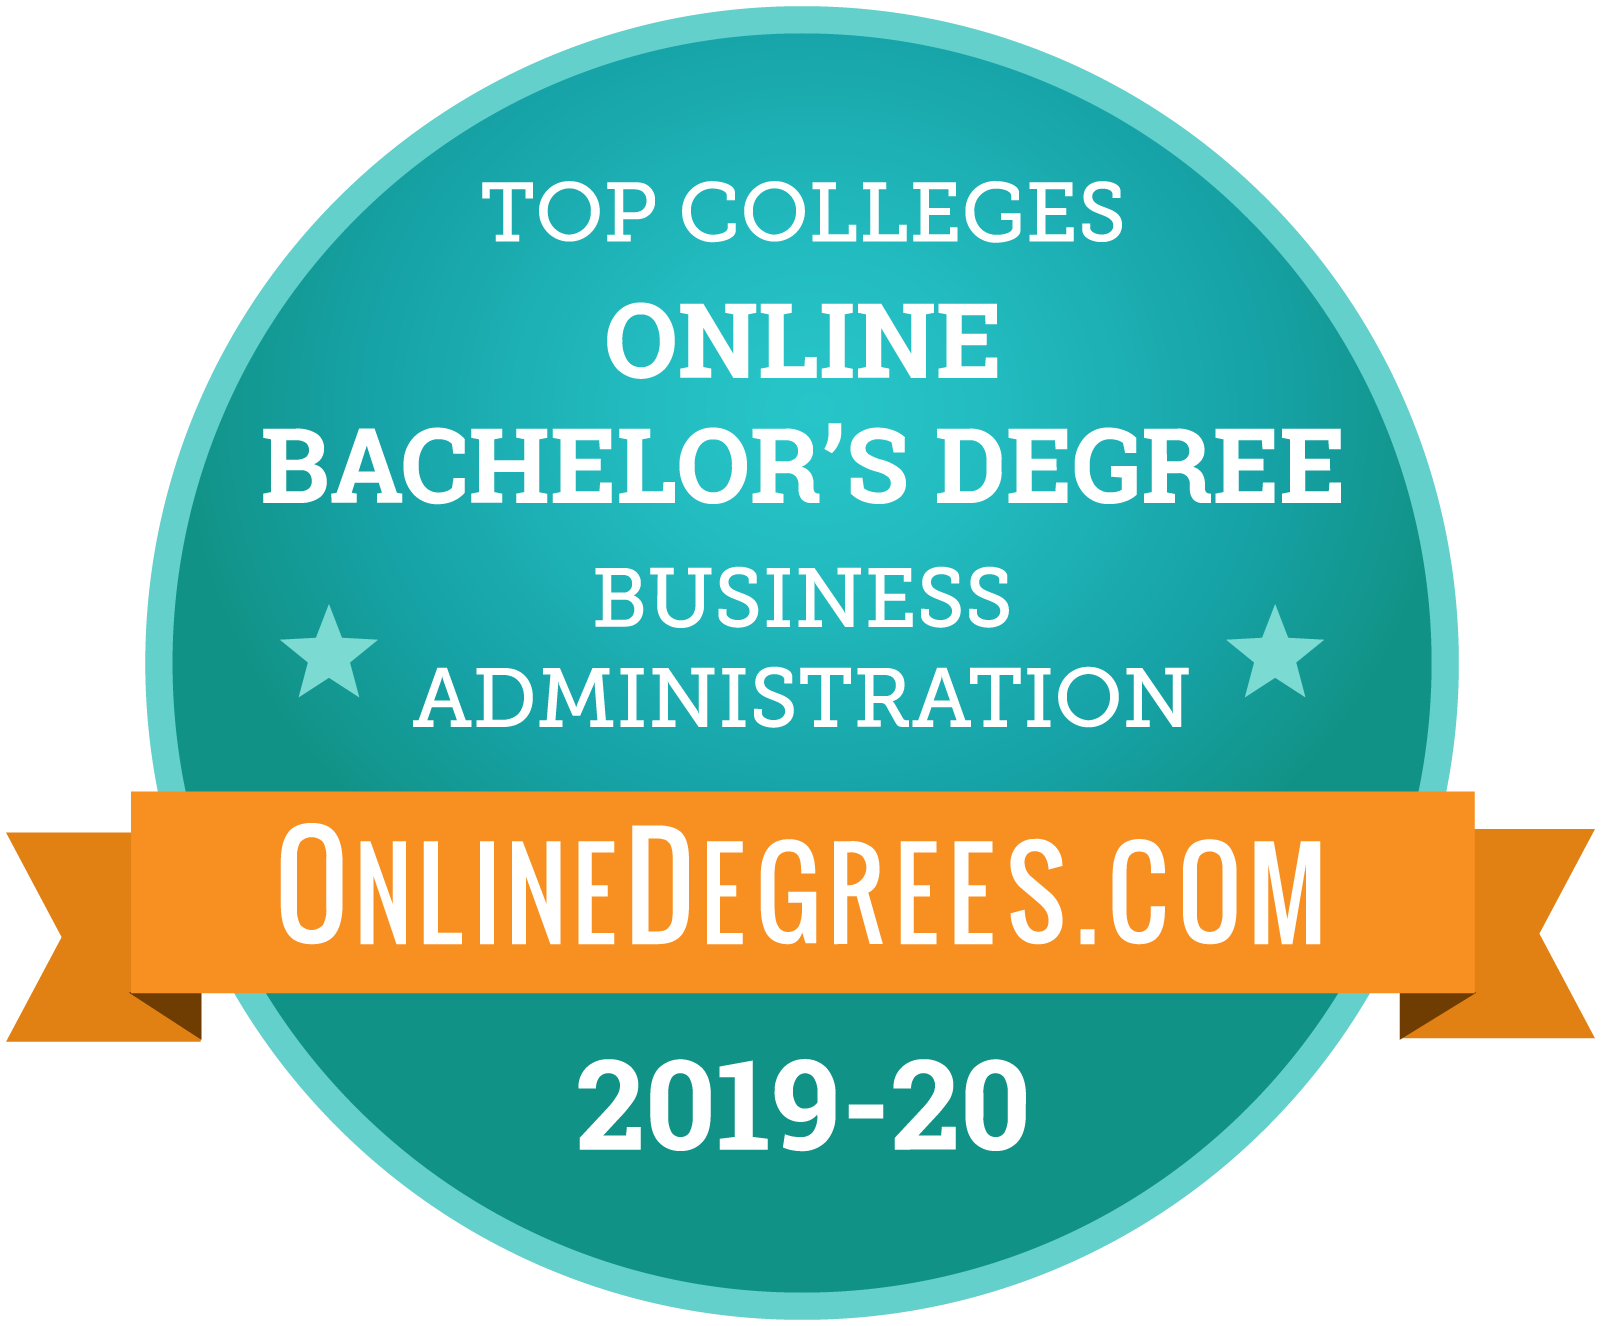 Best Online Colleges for Online BBA and Online Business Degree